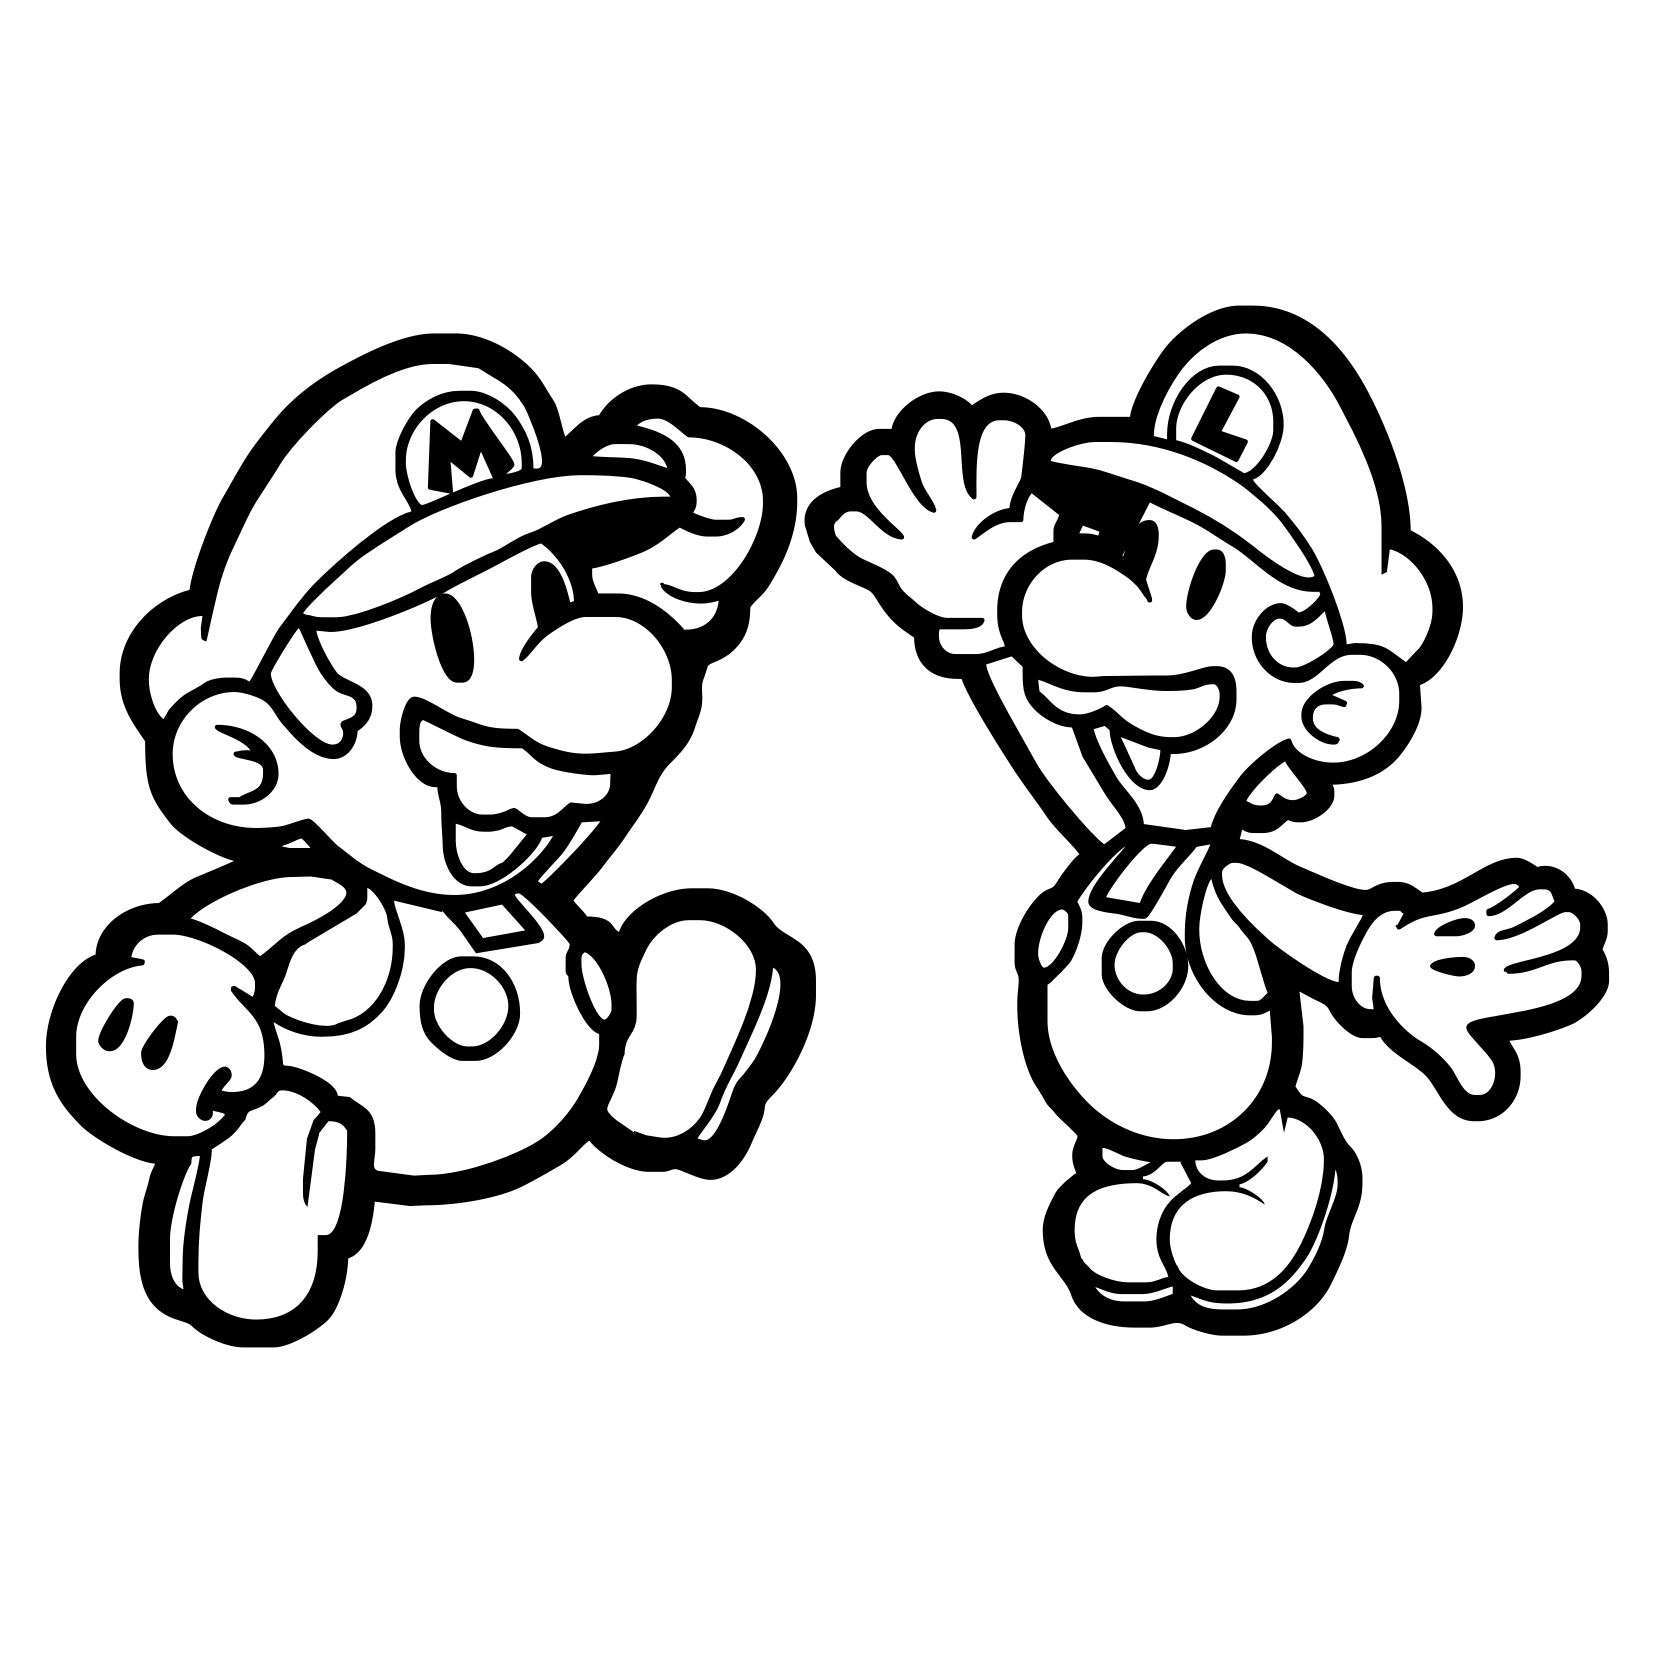 Super Mario Odyssey Coloring Pages to Print Download – Free Coloring ...